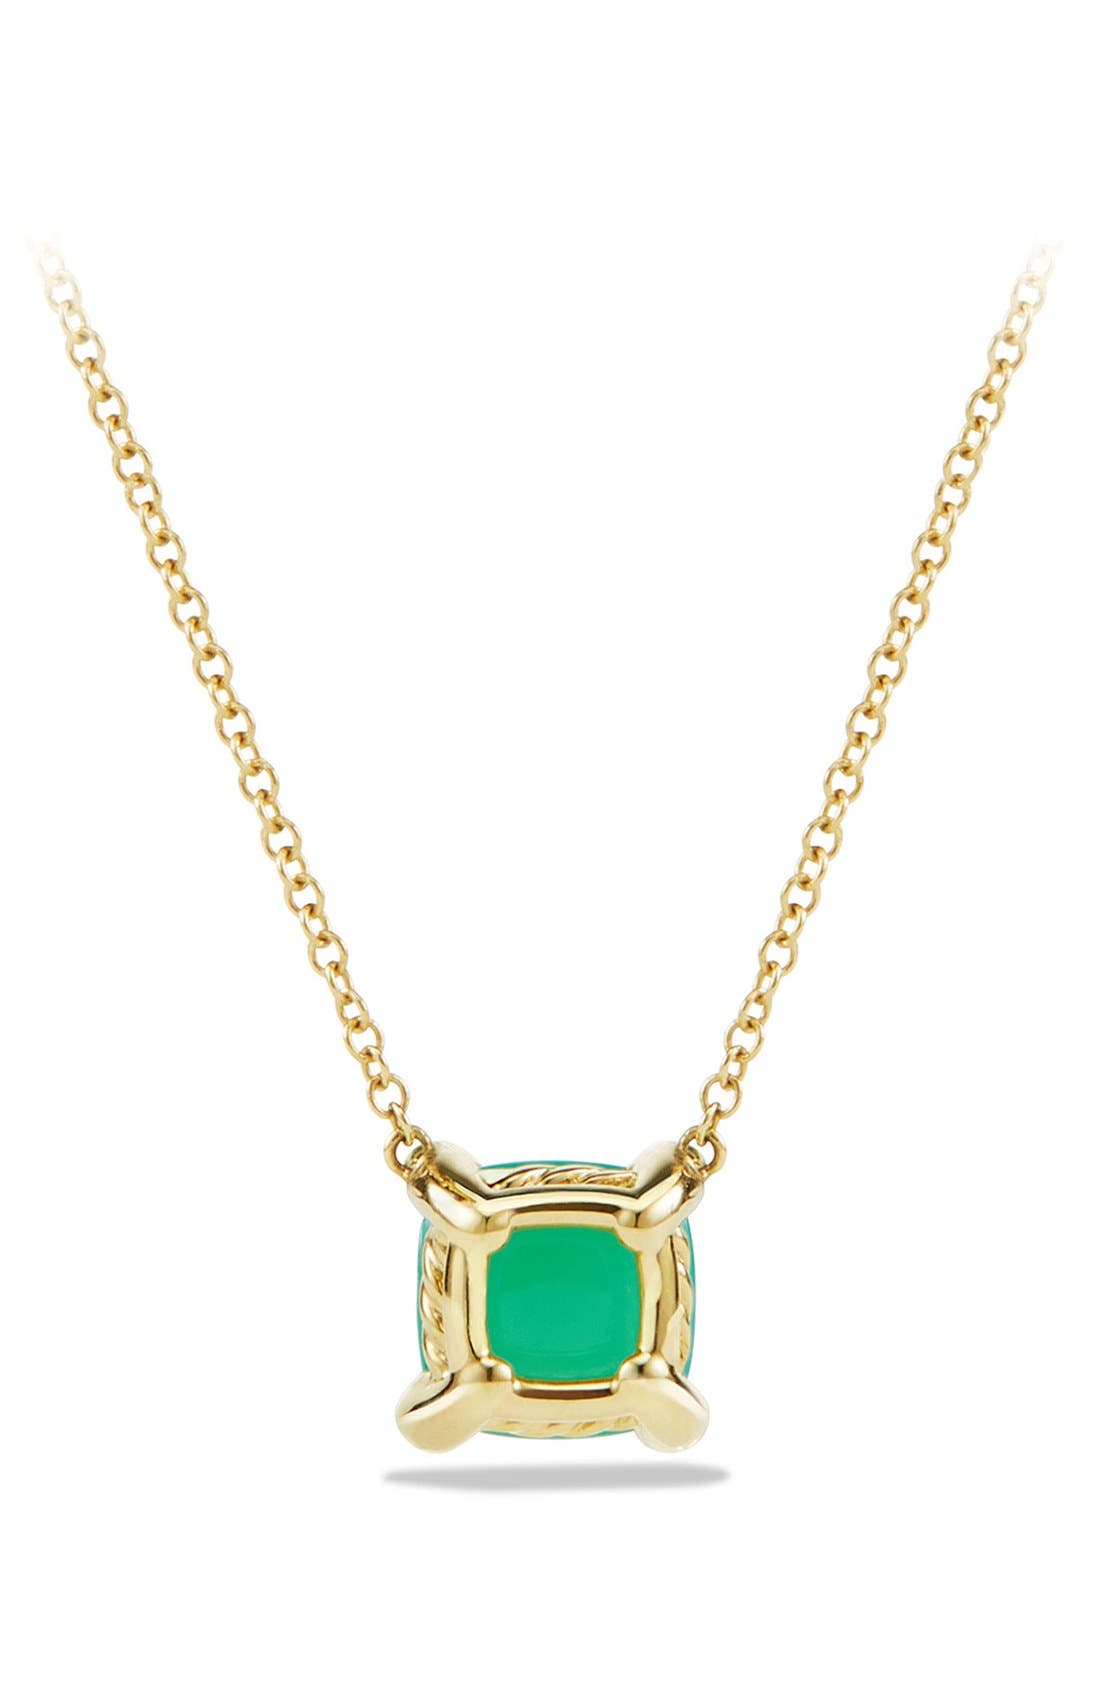 'Châtelaine' Pendant Necklace with Semiprecious Stone and Diamonds in 18K Gold,                             Alternate thumbnail 6, color,                             CHRYSOPRASE